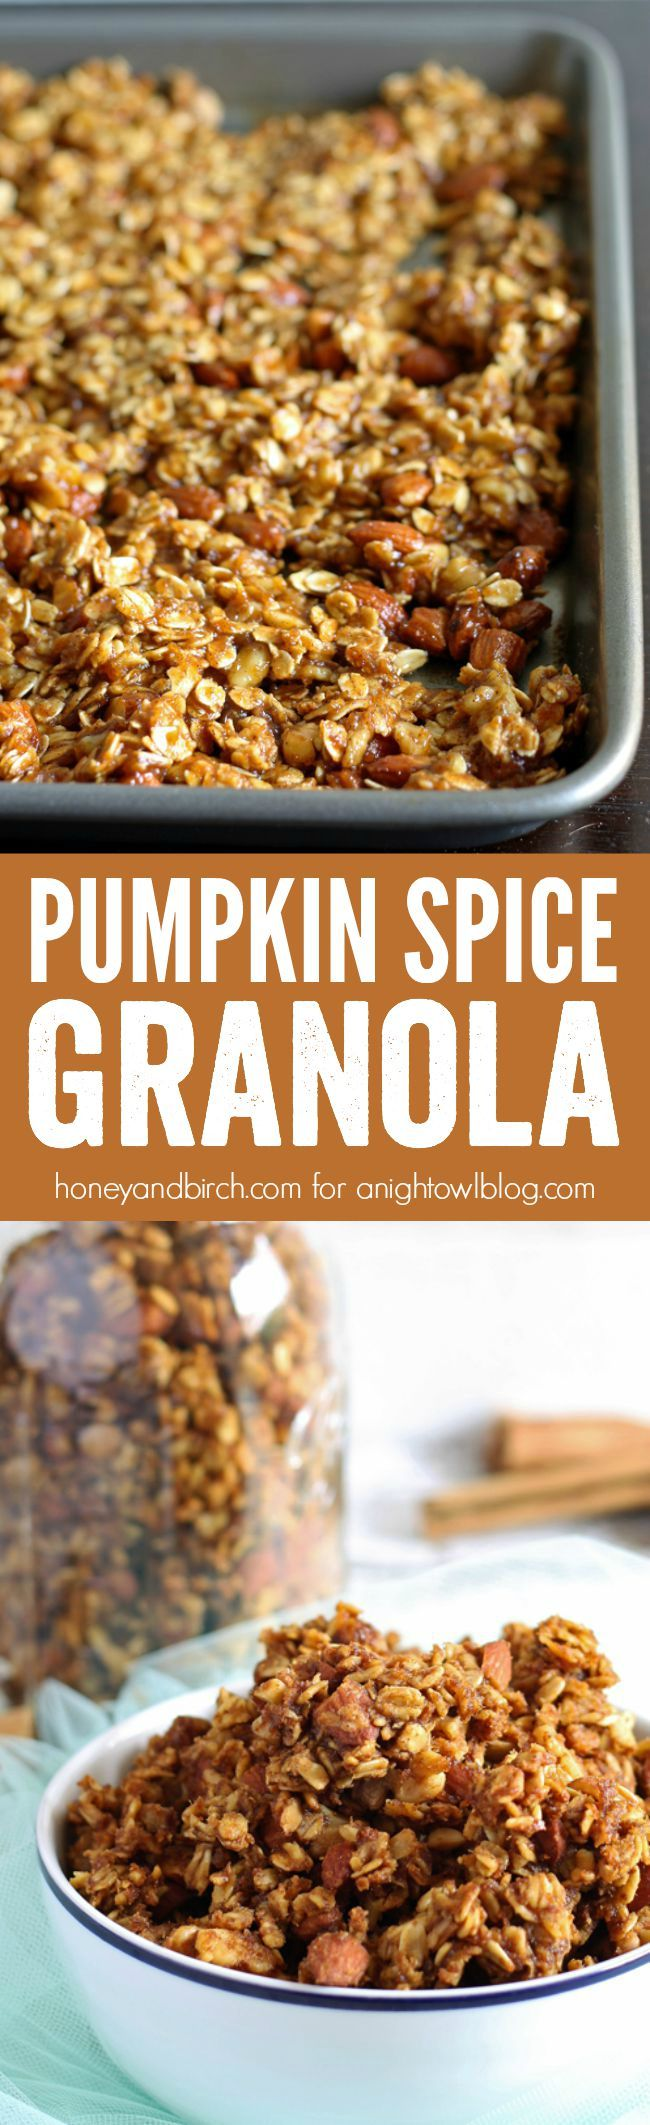 Best 25+ Granola ideas on Pinterest | Healthy granola ...